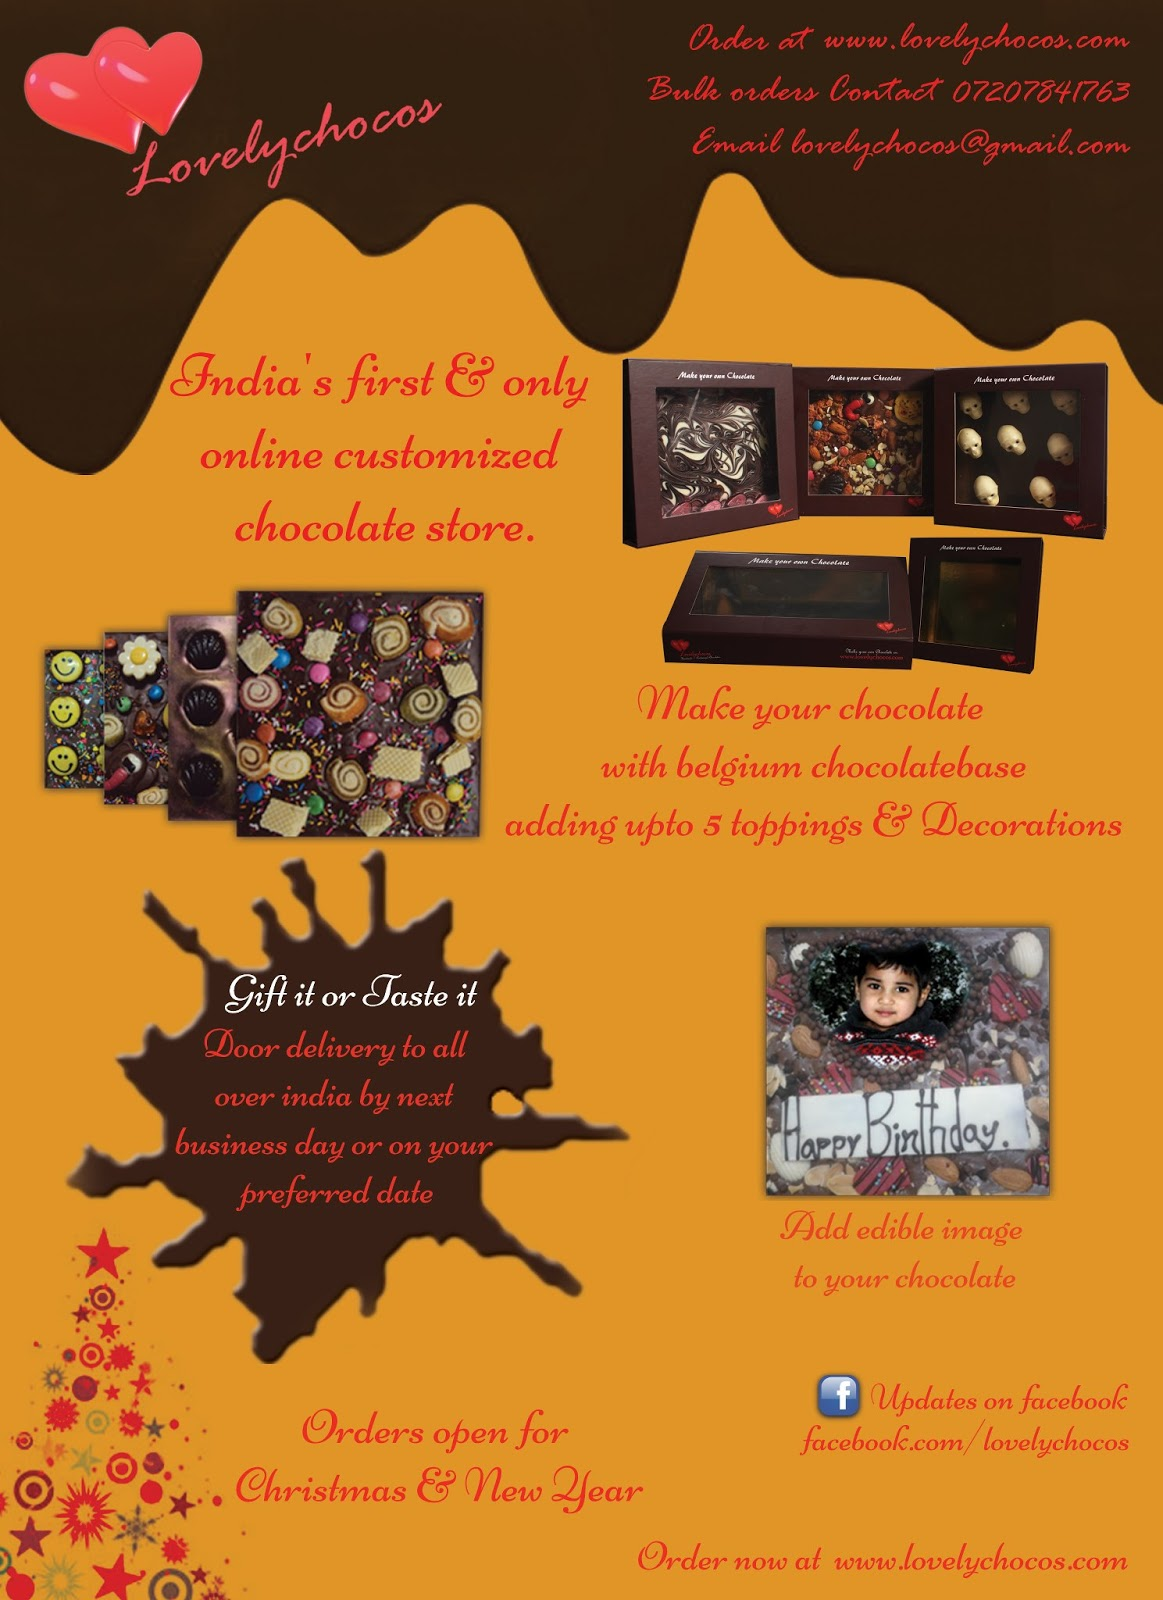 Lovelychocos.com Online Customize Chocolate Store First time in ...